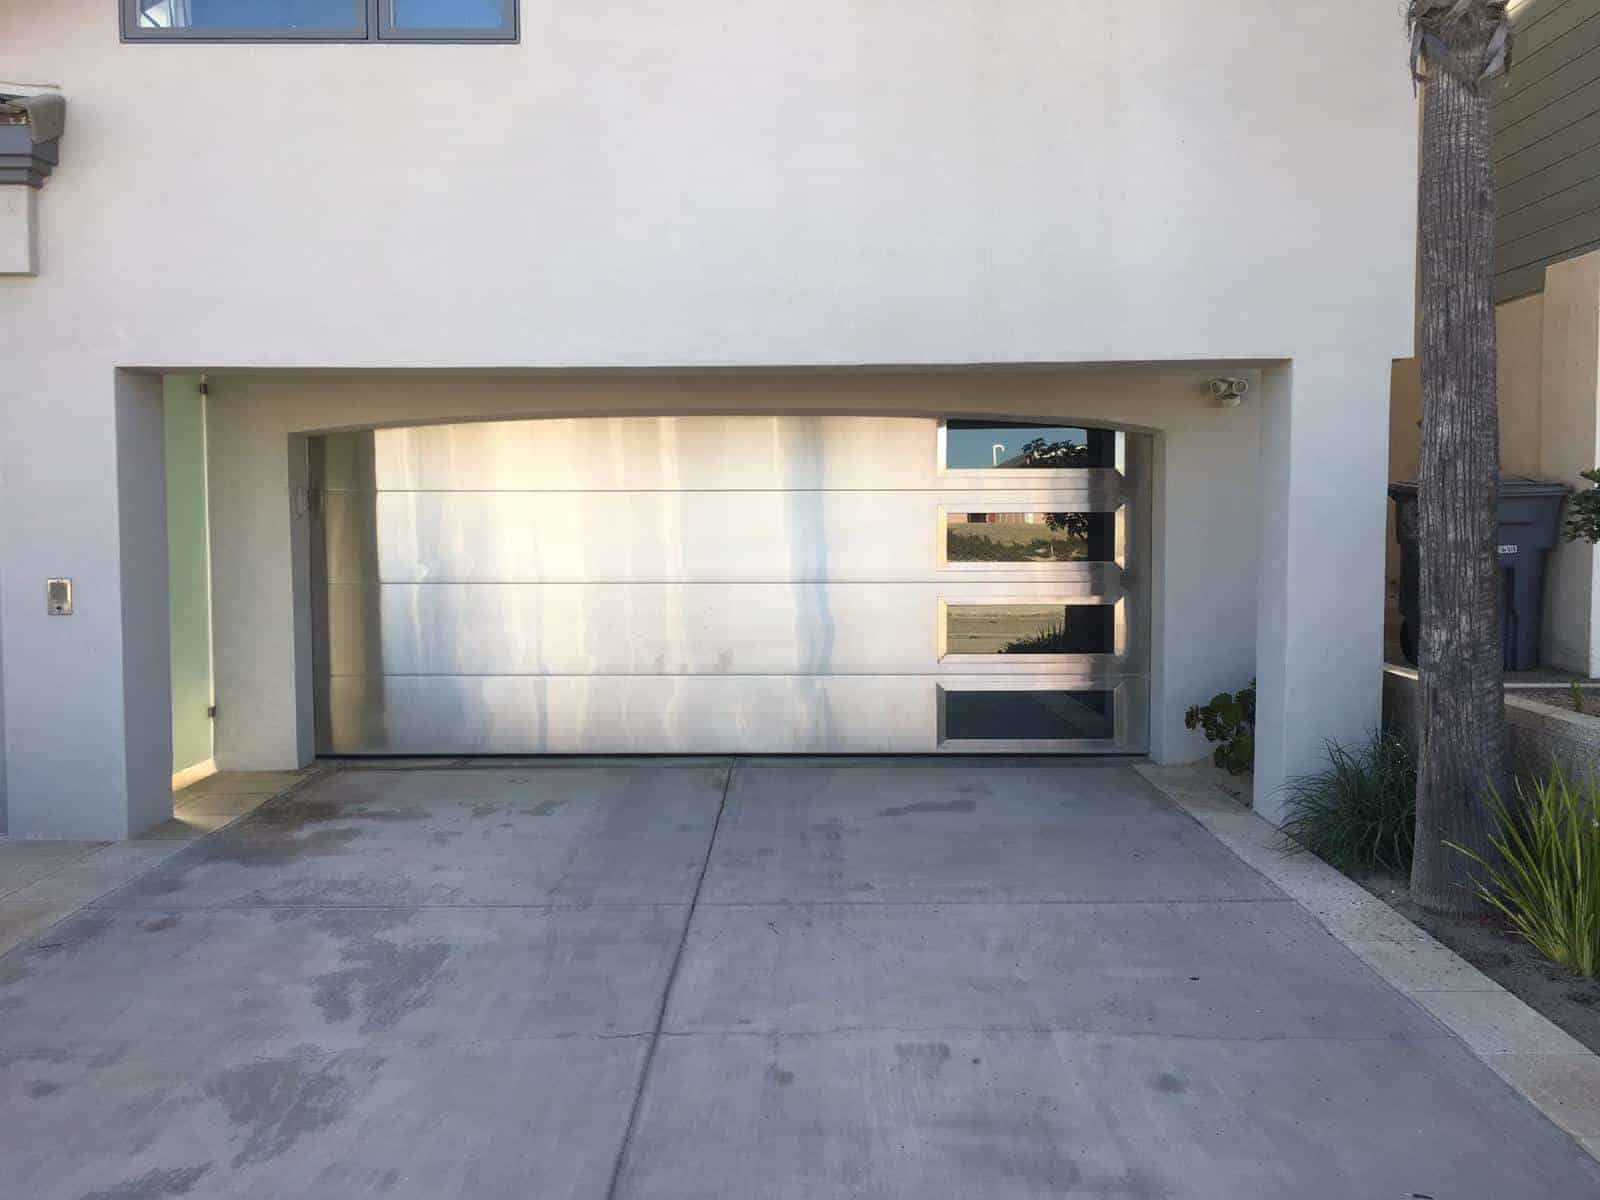 Garage Door Repair With Instant Solutions 24/7